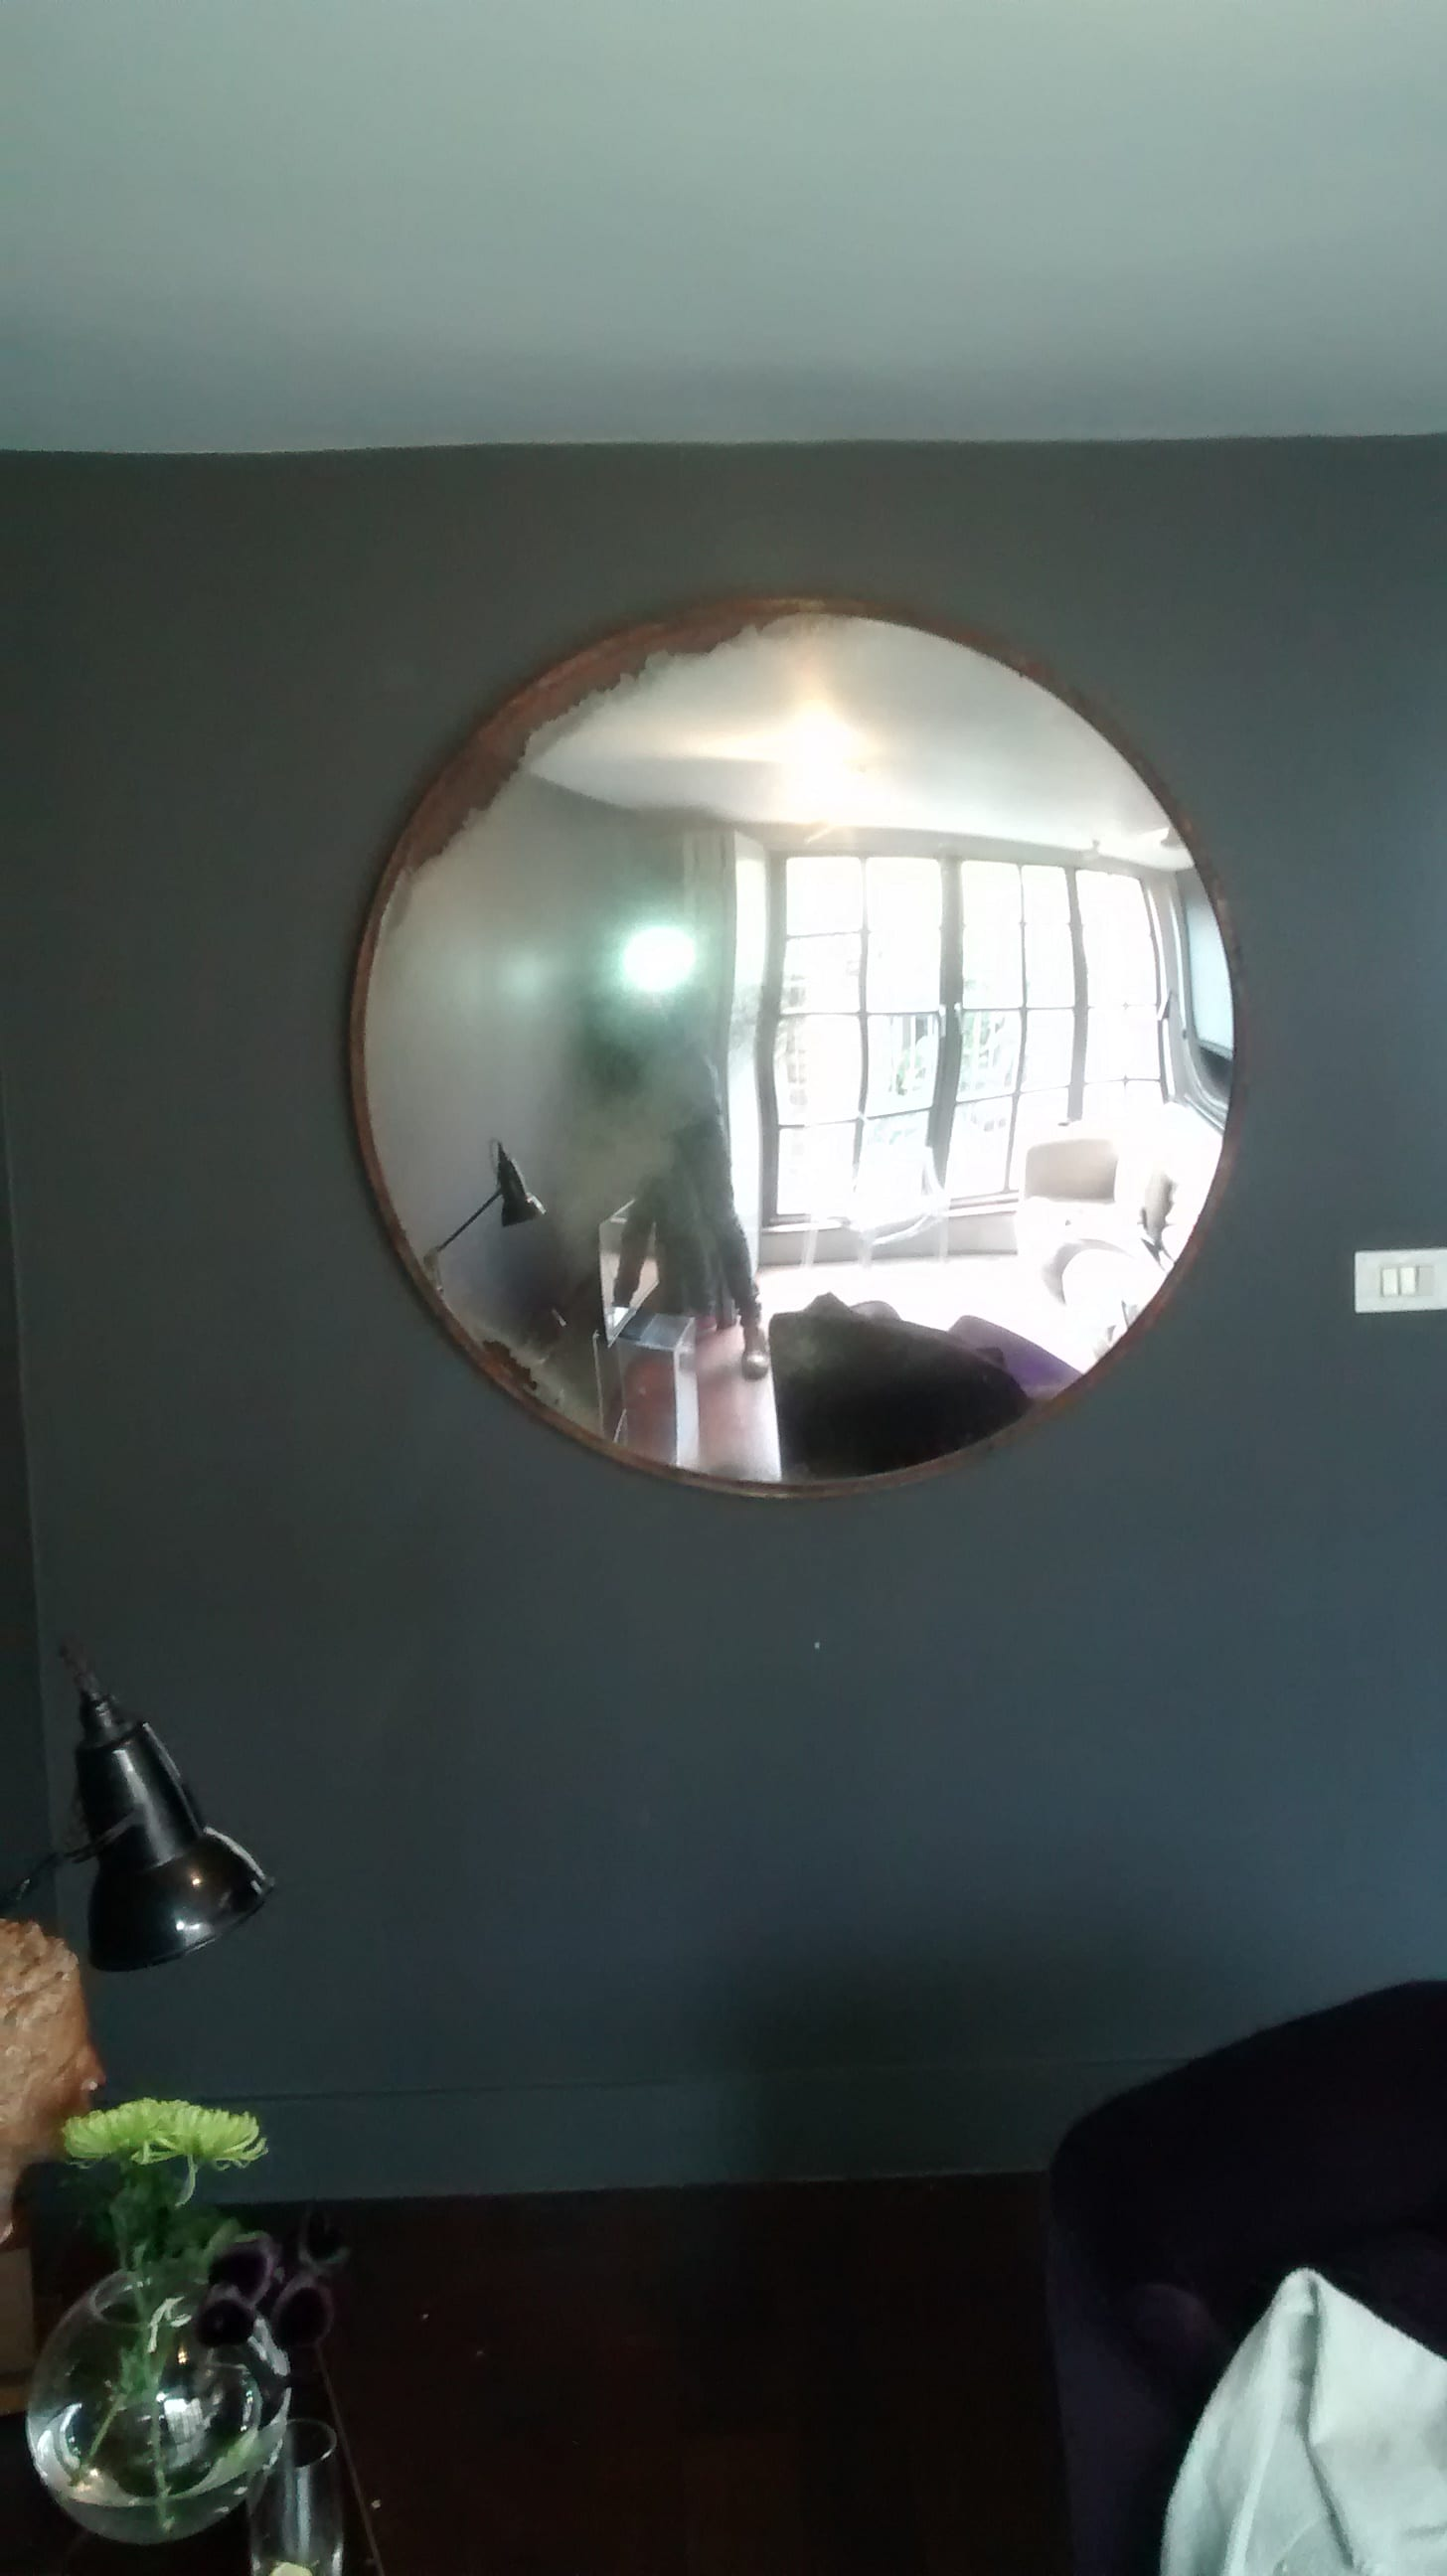 A 30kg circular and convex metal framed mirror hung high above a sofa in a living room in East London.